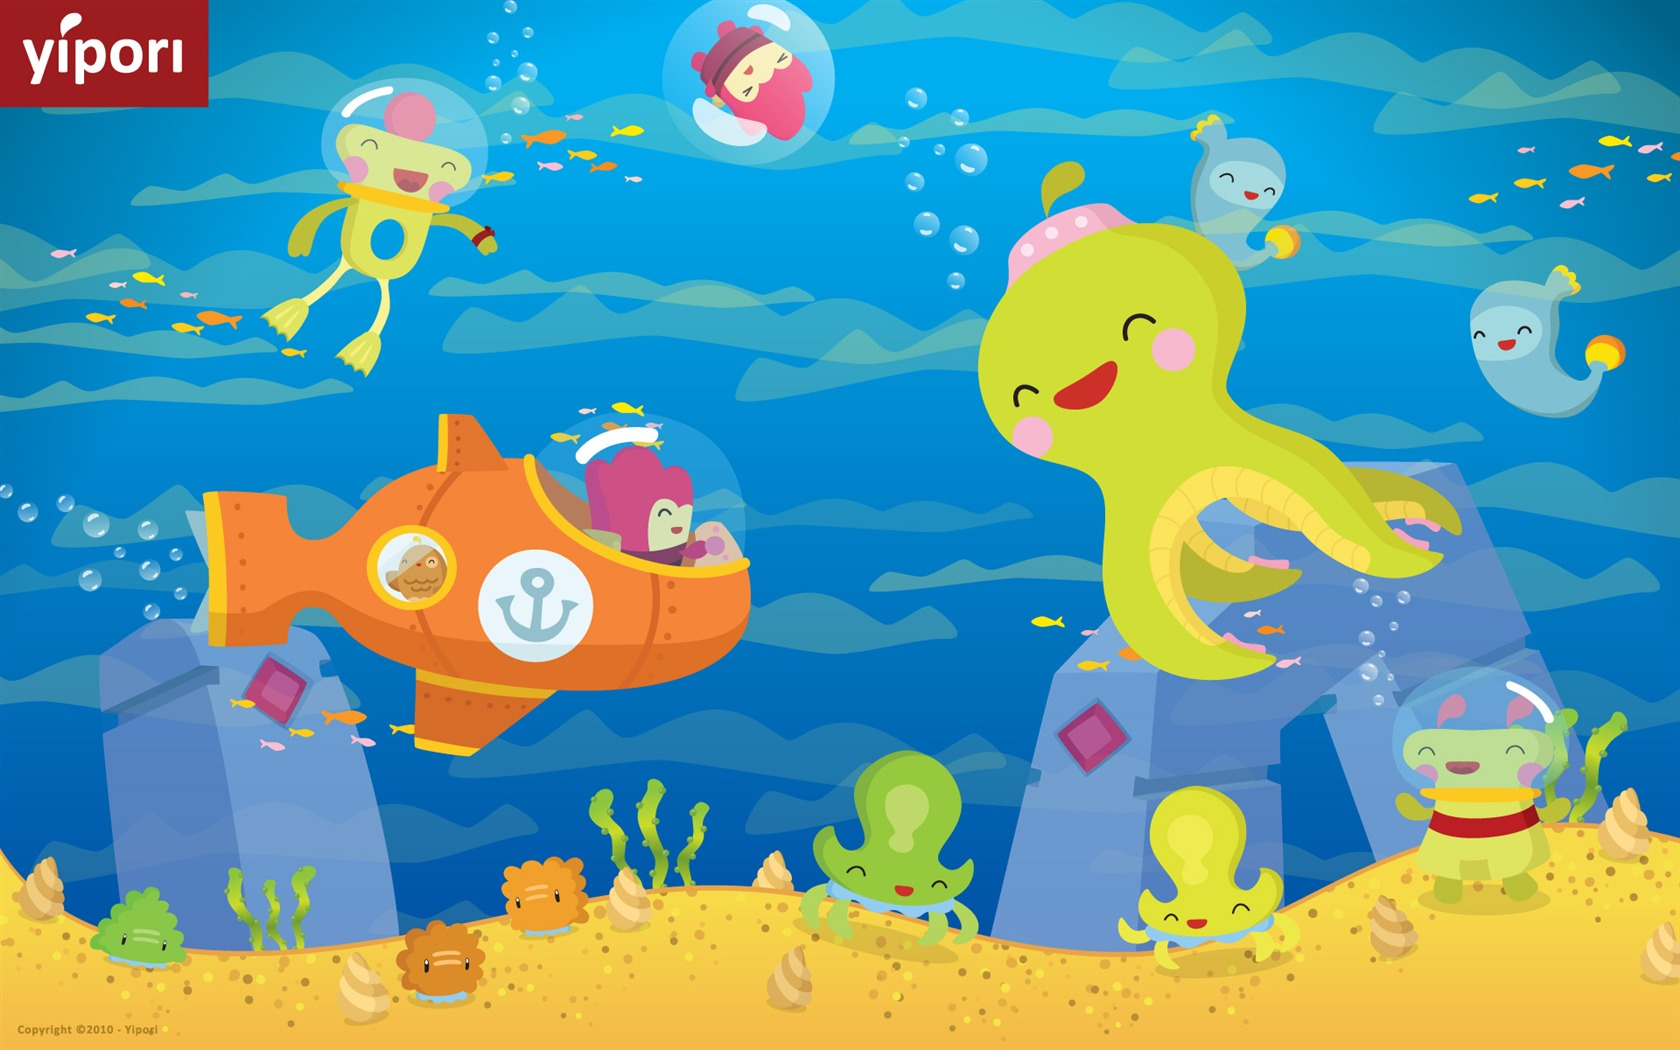 Cute Kid Wallpapers Free Download Underwater Cute Illustration Wallpaper 1680x1050 Download